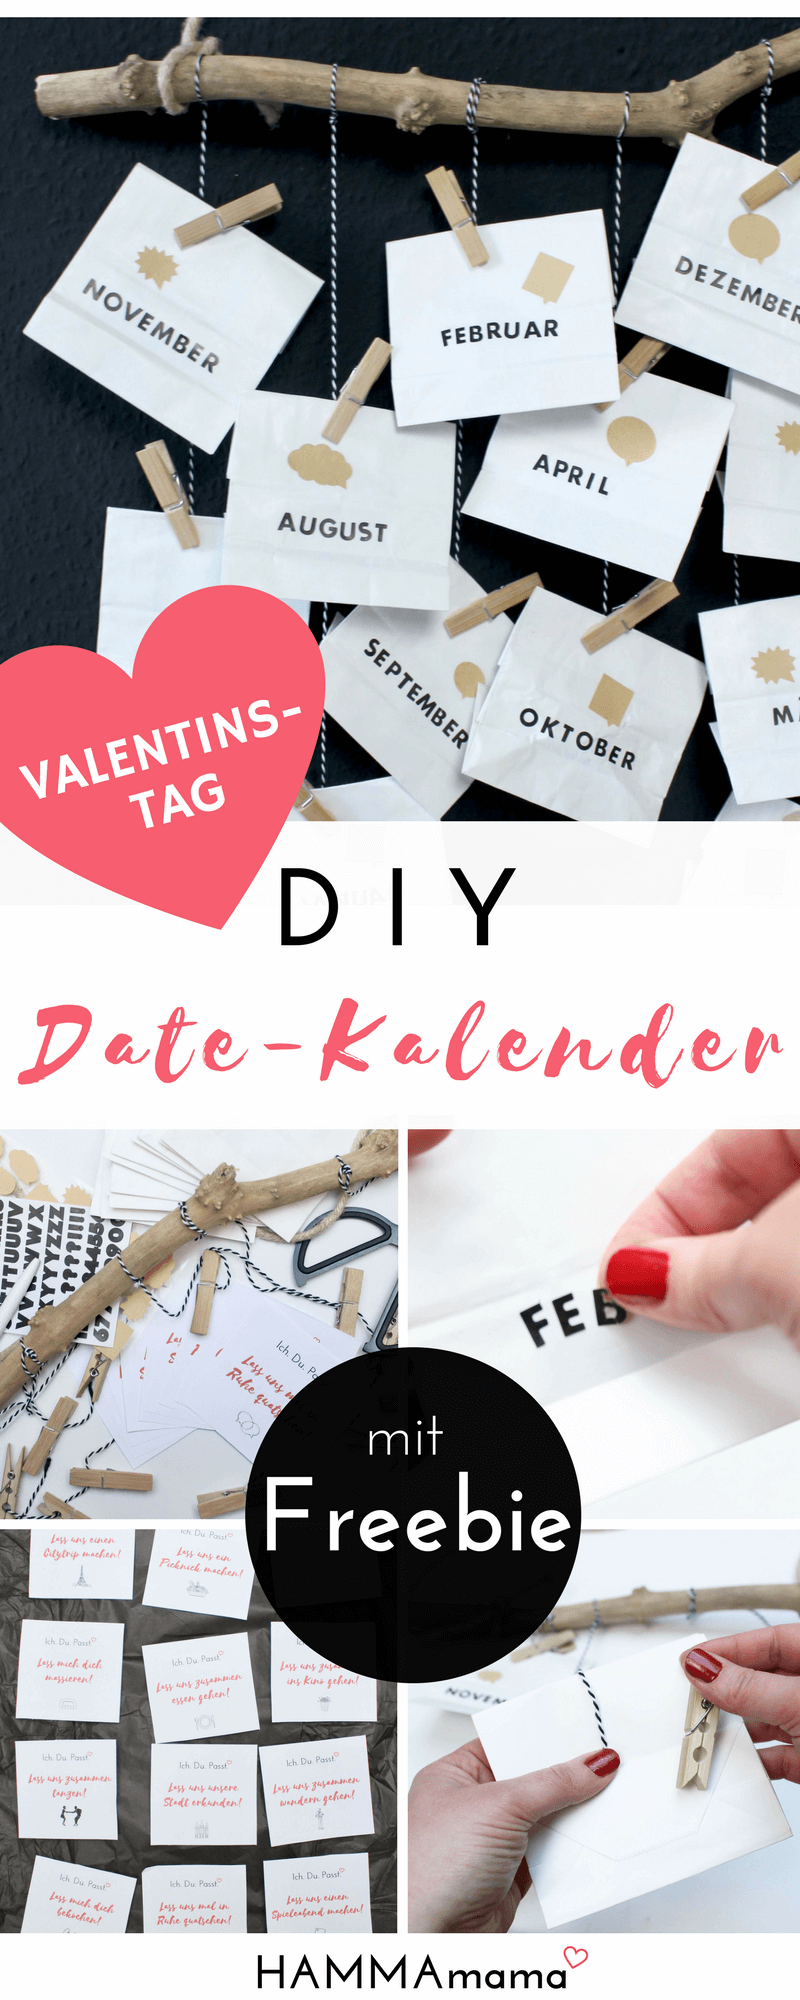 diy zum valentinstag mit freebie date kalender selber. Black Bedroom Furniture Sets. Home Design Ideas